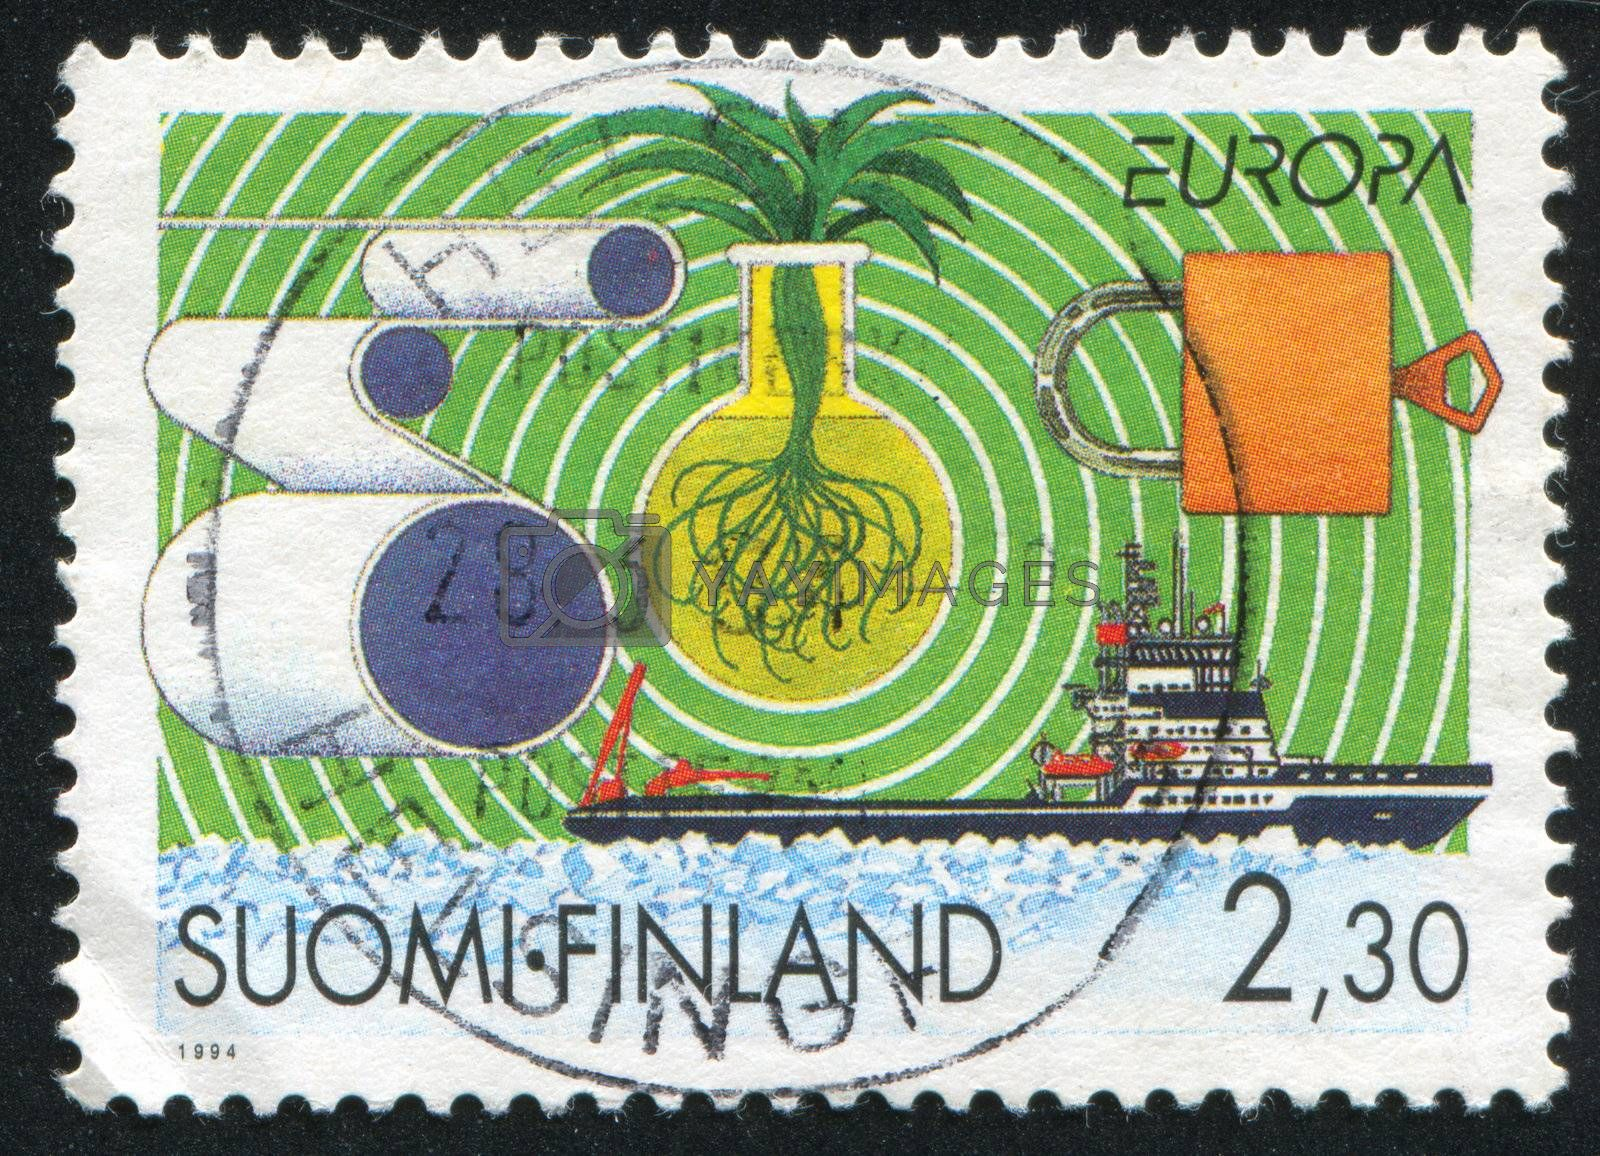 FINLAND - CIRCA 1994: stamp printed by Finland, shows Finnish Technology, circa 1994